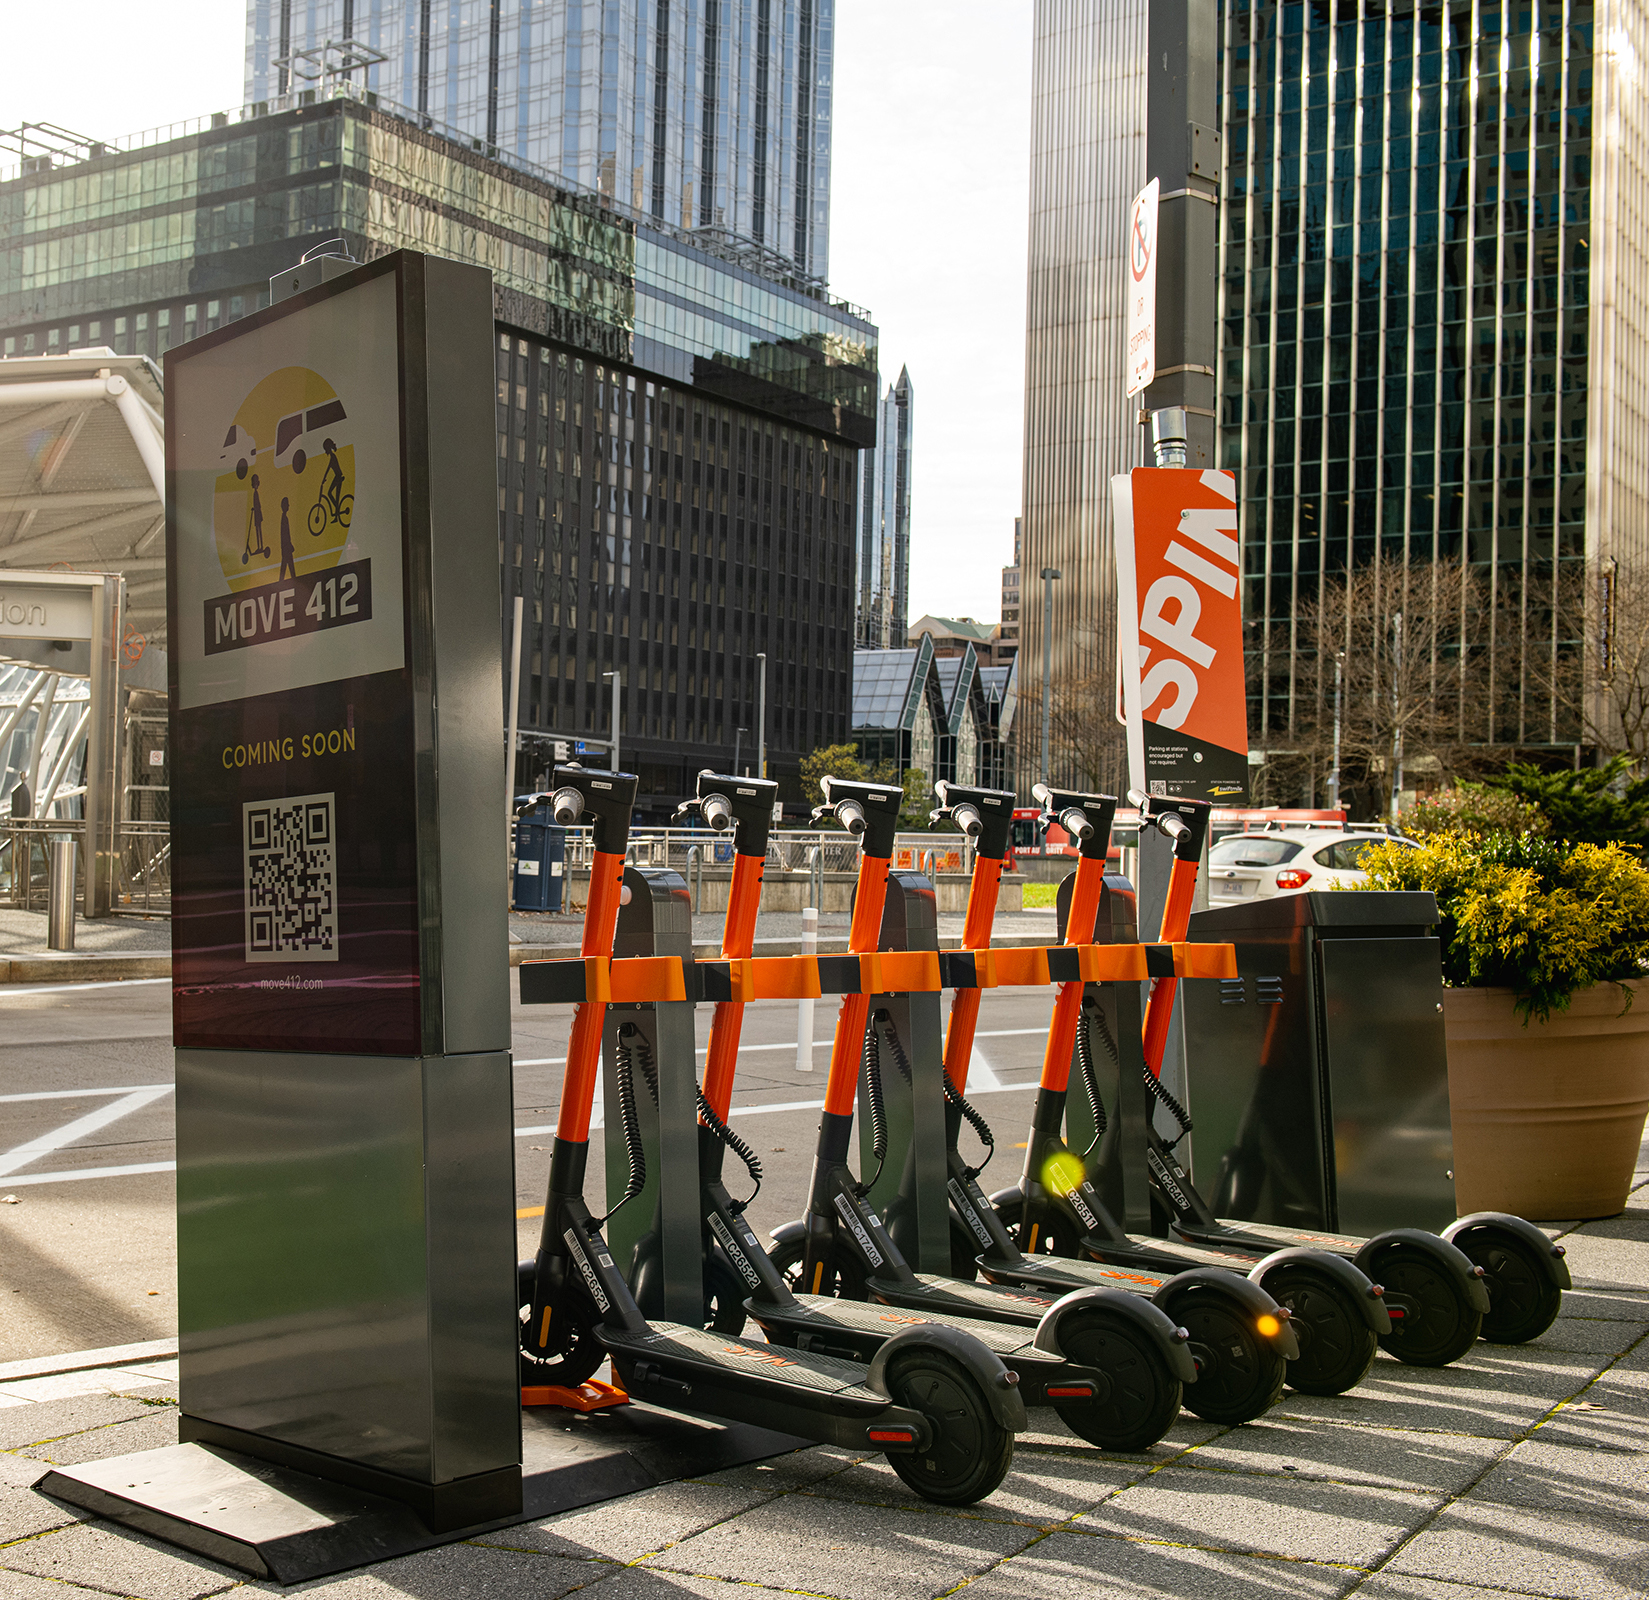 Group of Spin electric scooters parked at a Spin Hub charging station